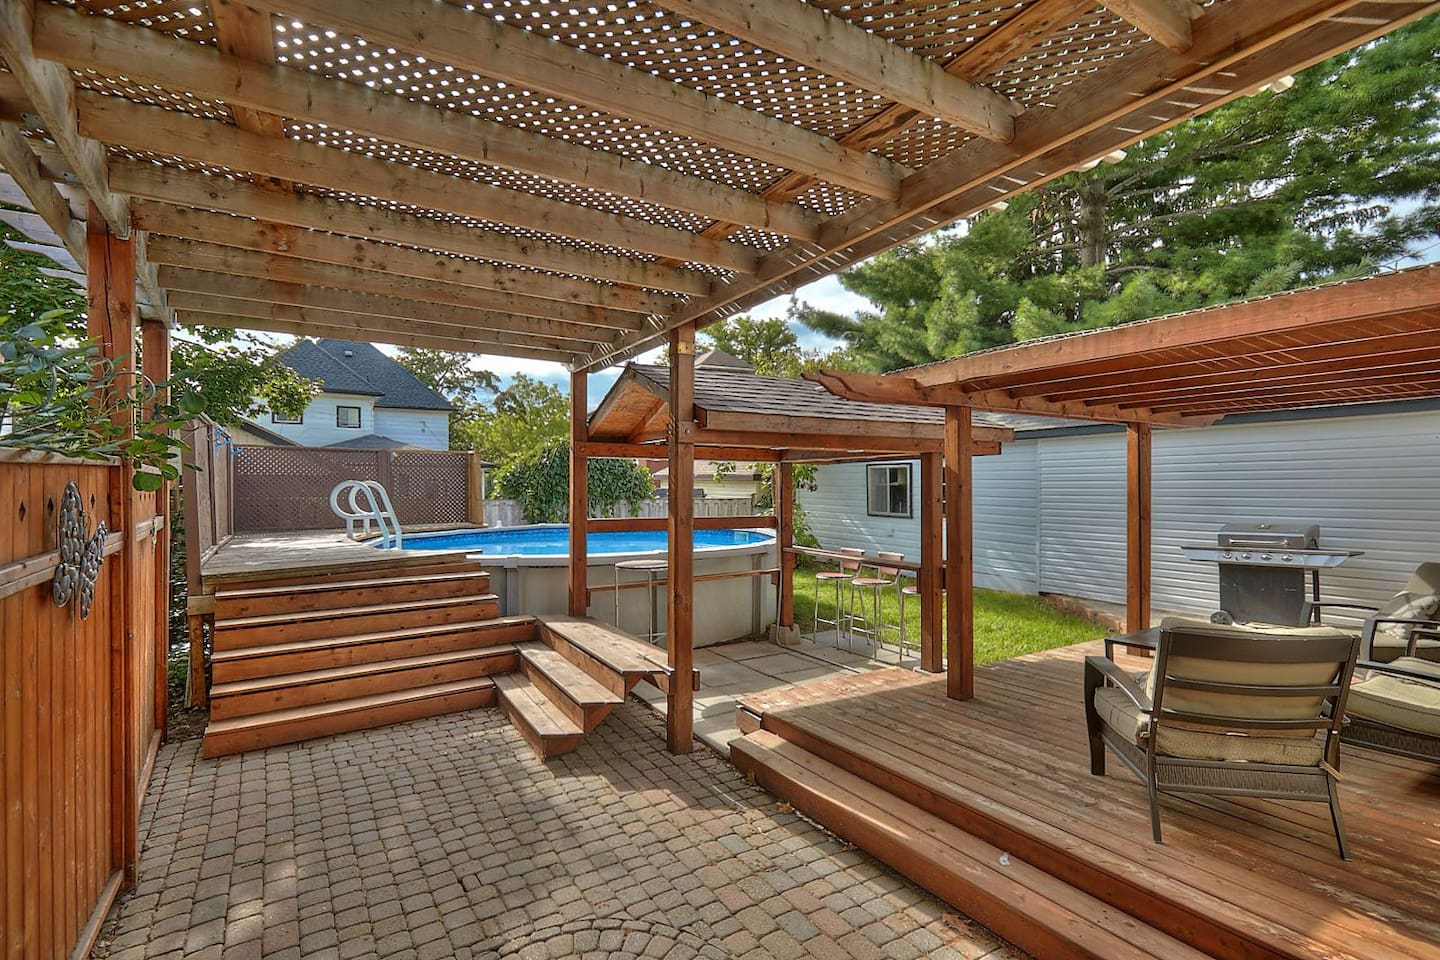 Niagara Falls Family Vacation Home - Sleeps 11